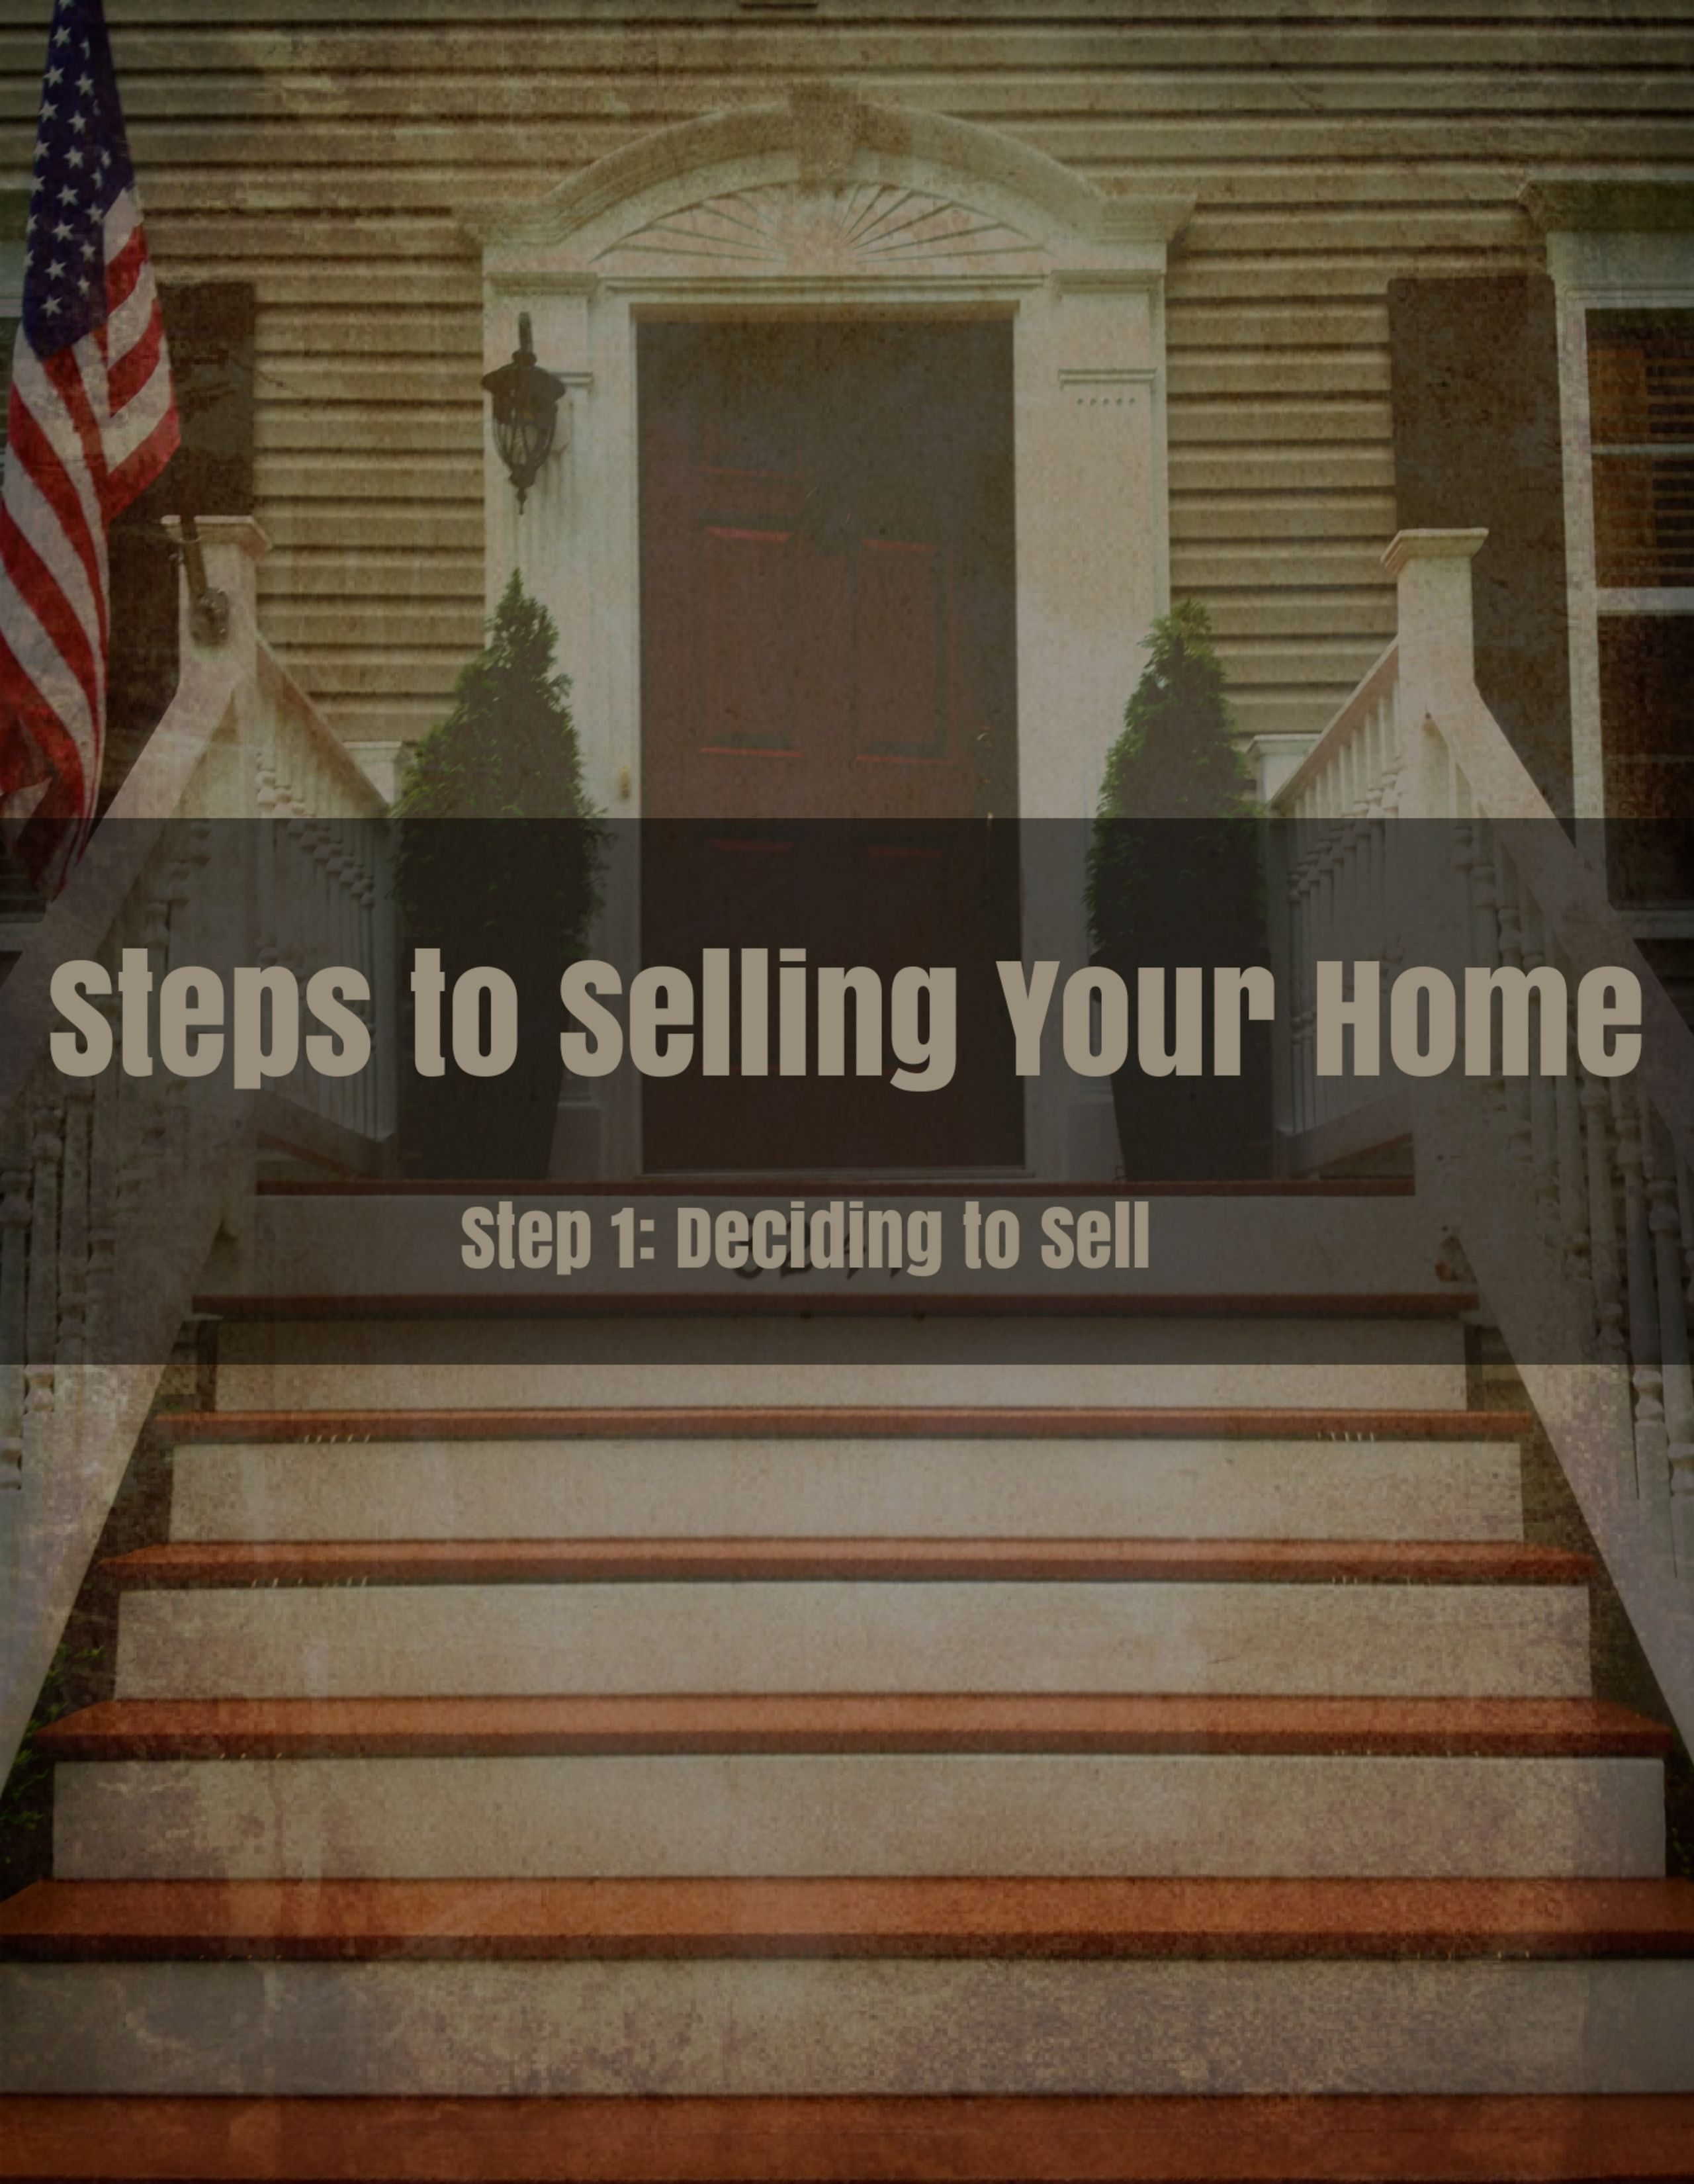 Step 1 – Deciding to Sell Your Home